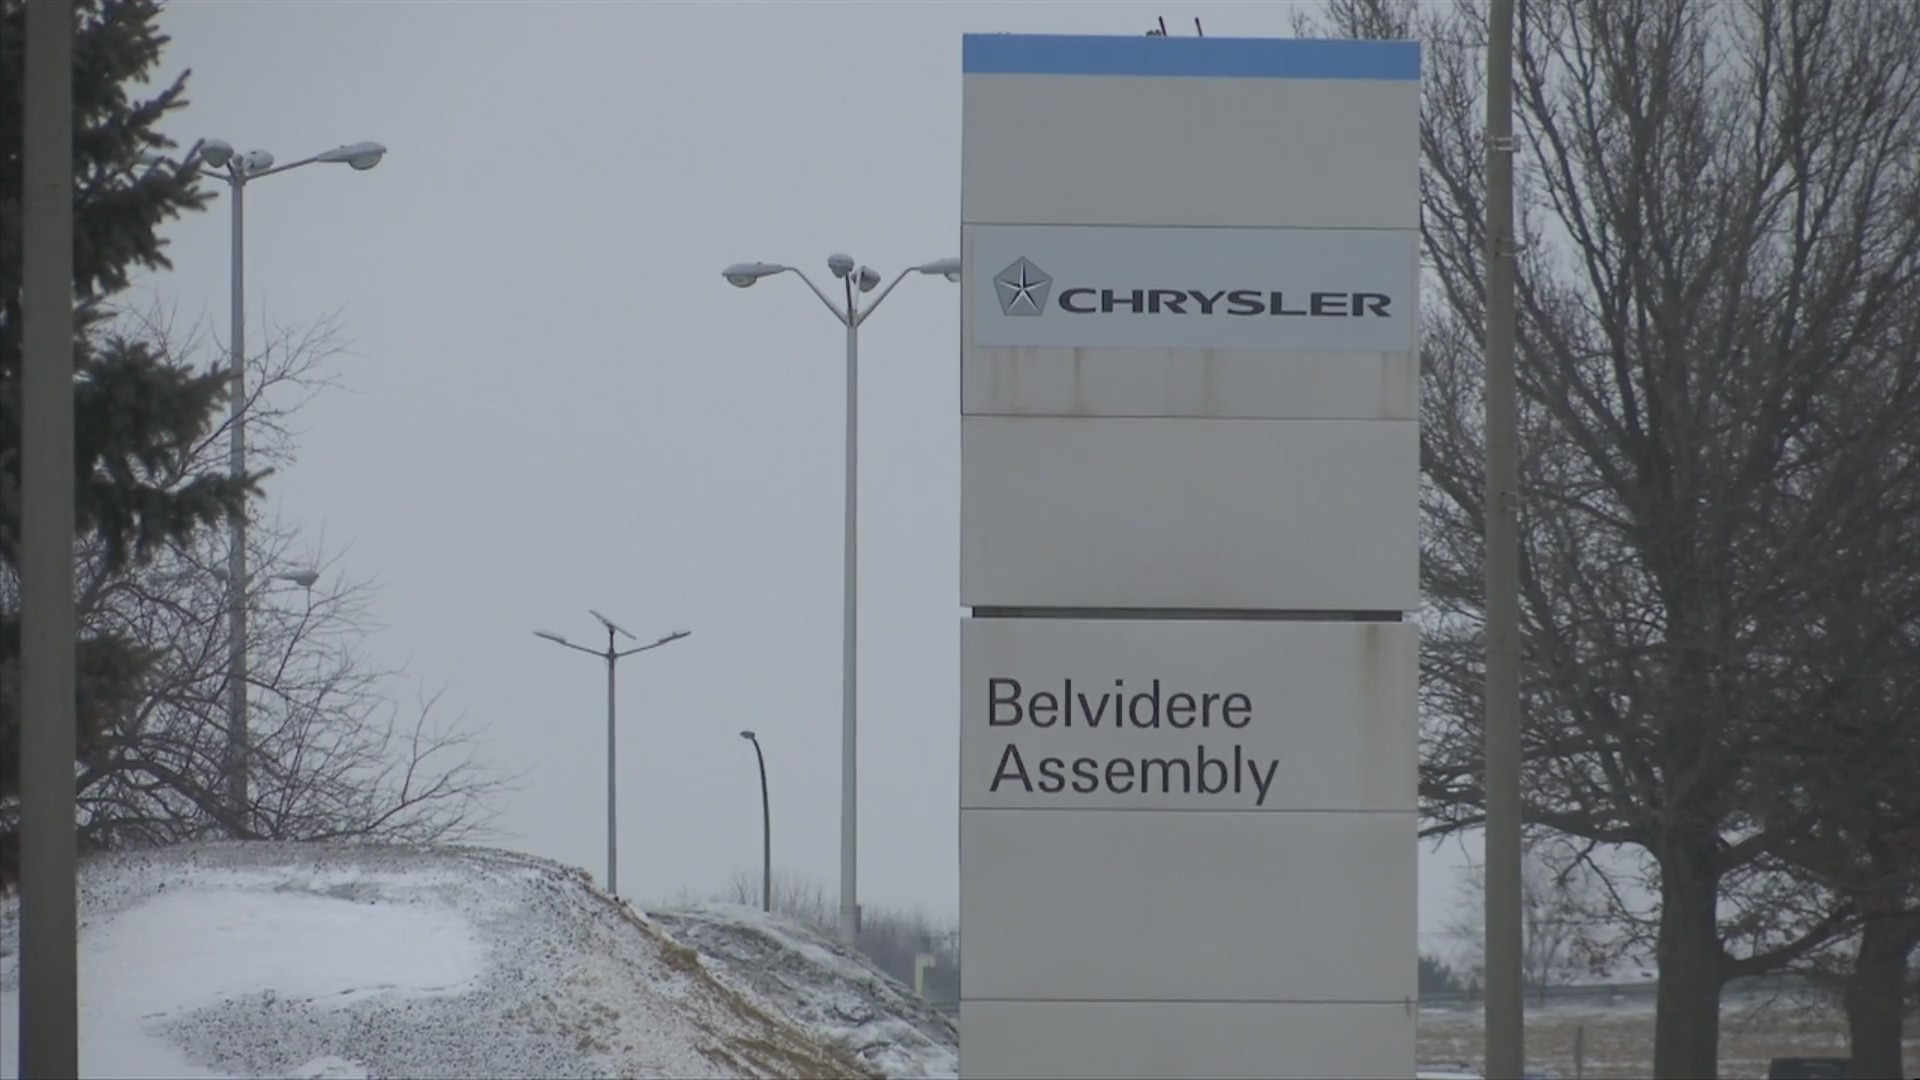 Belvidere Chrysler plant cutting 'C Crew' in May